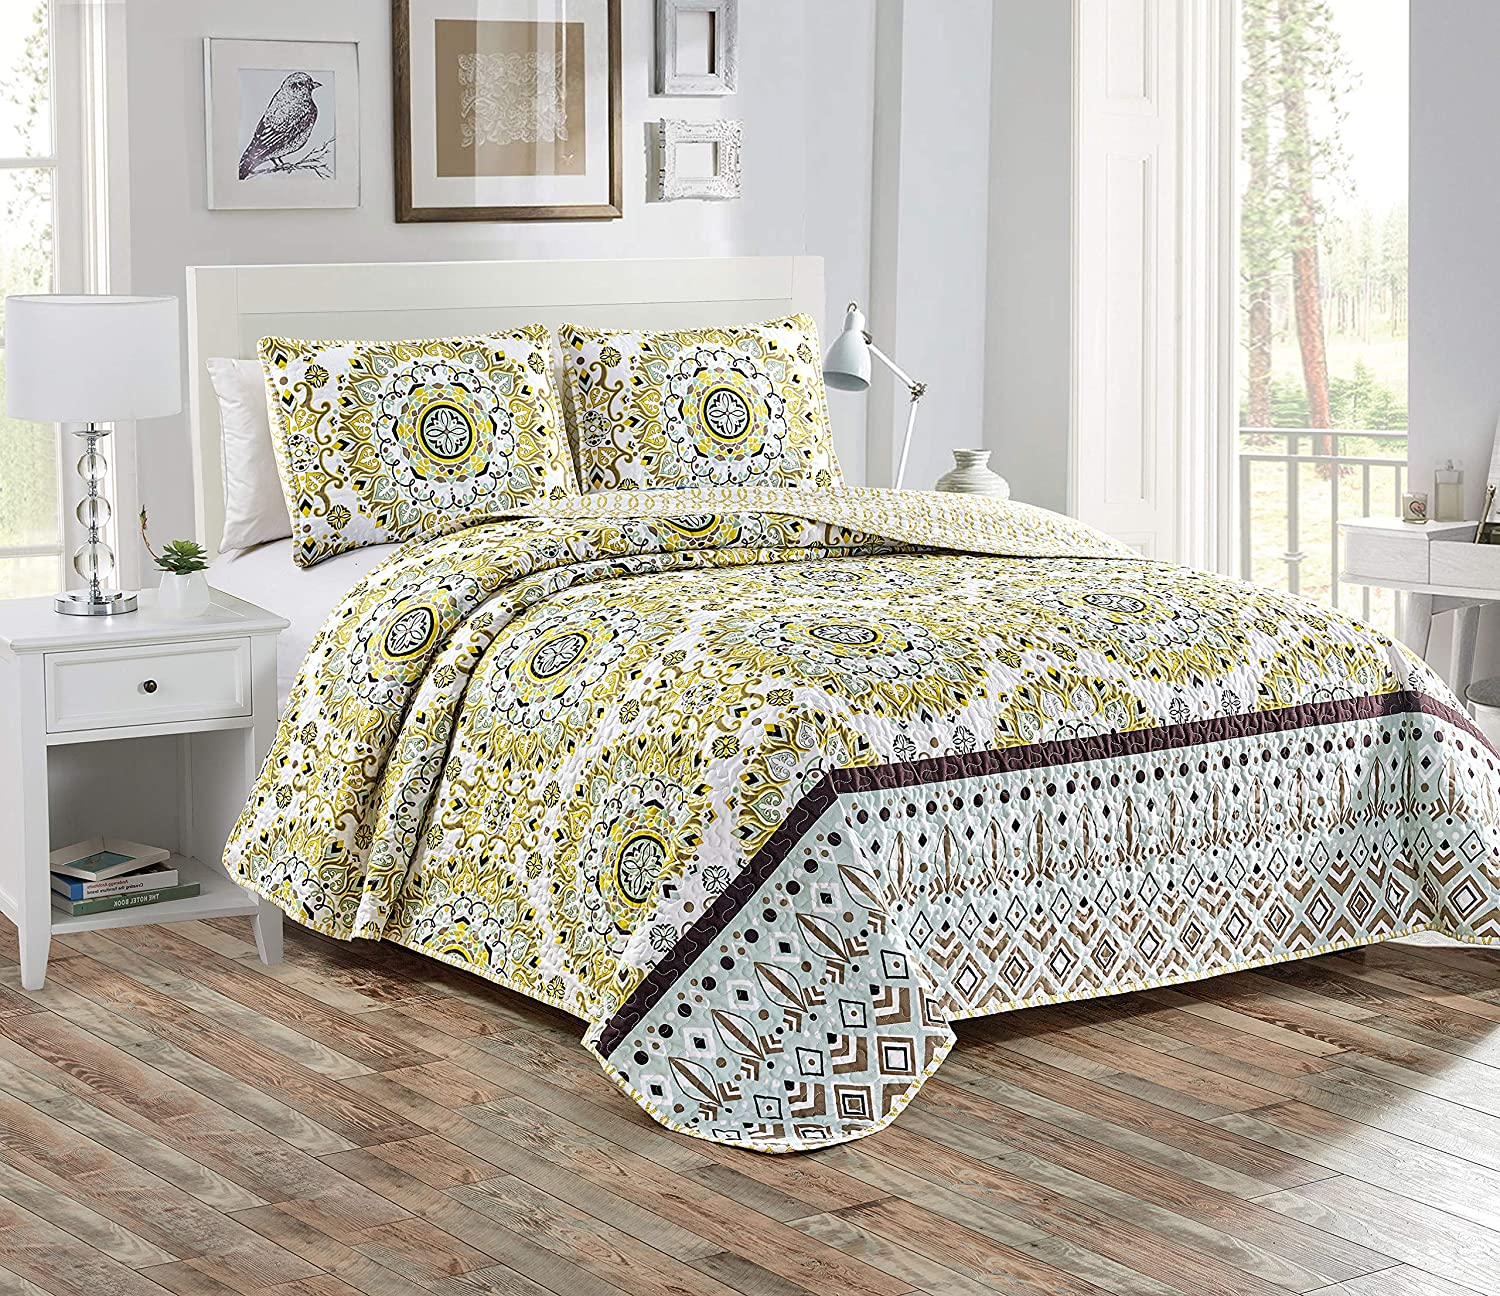 Home Collection 3pc King/Cal King Quilted Bedspread Set Floral Bedding Yellow White Dark Brown Cool Mint Green New # Sara